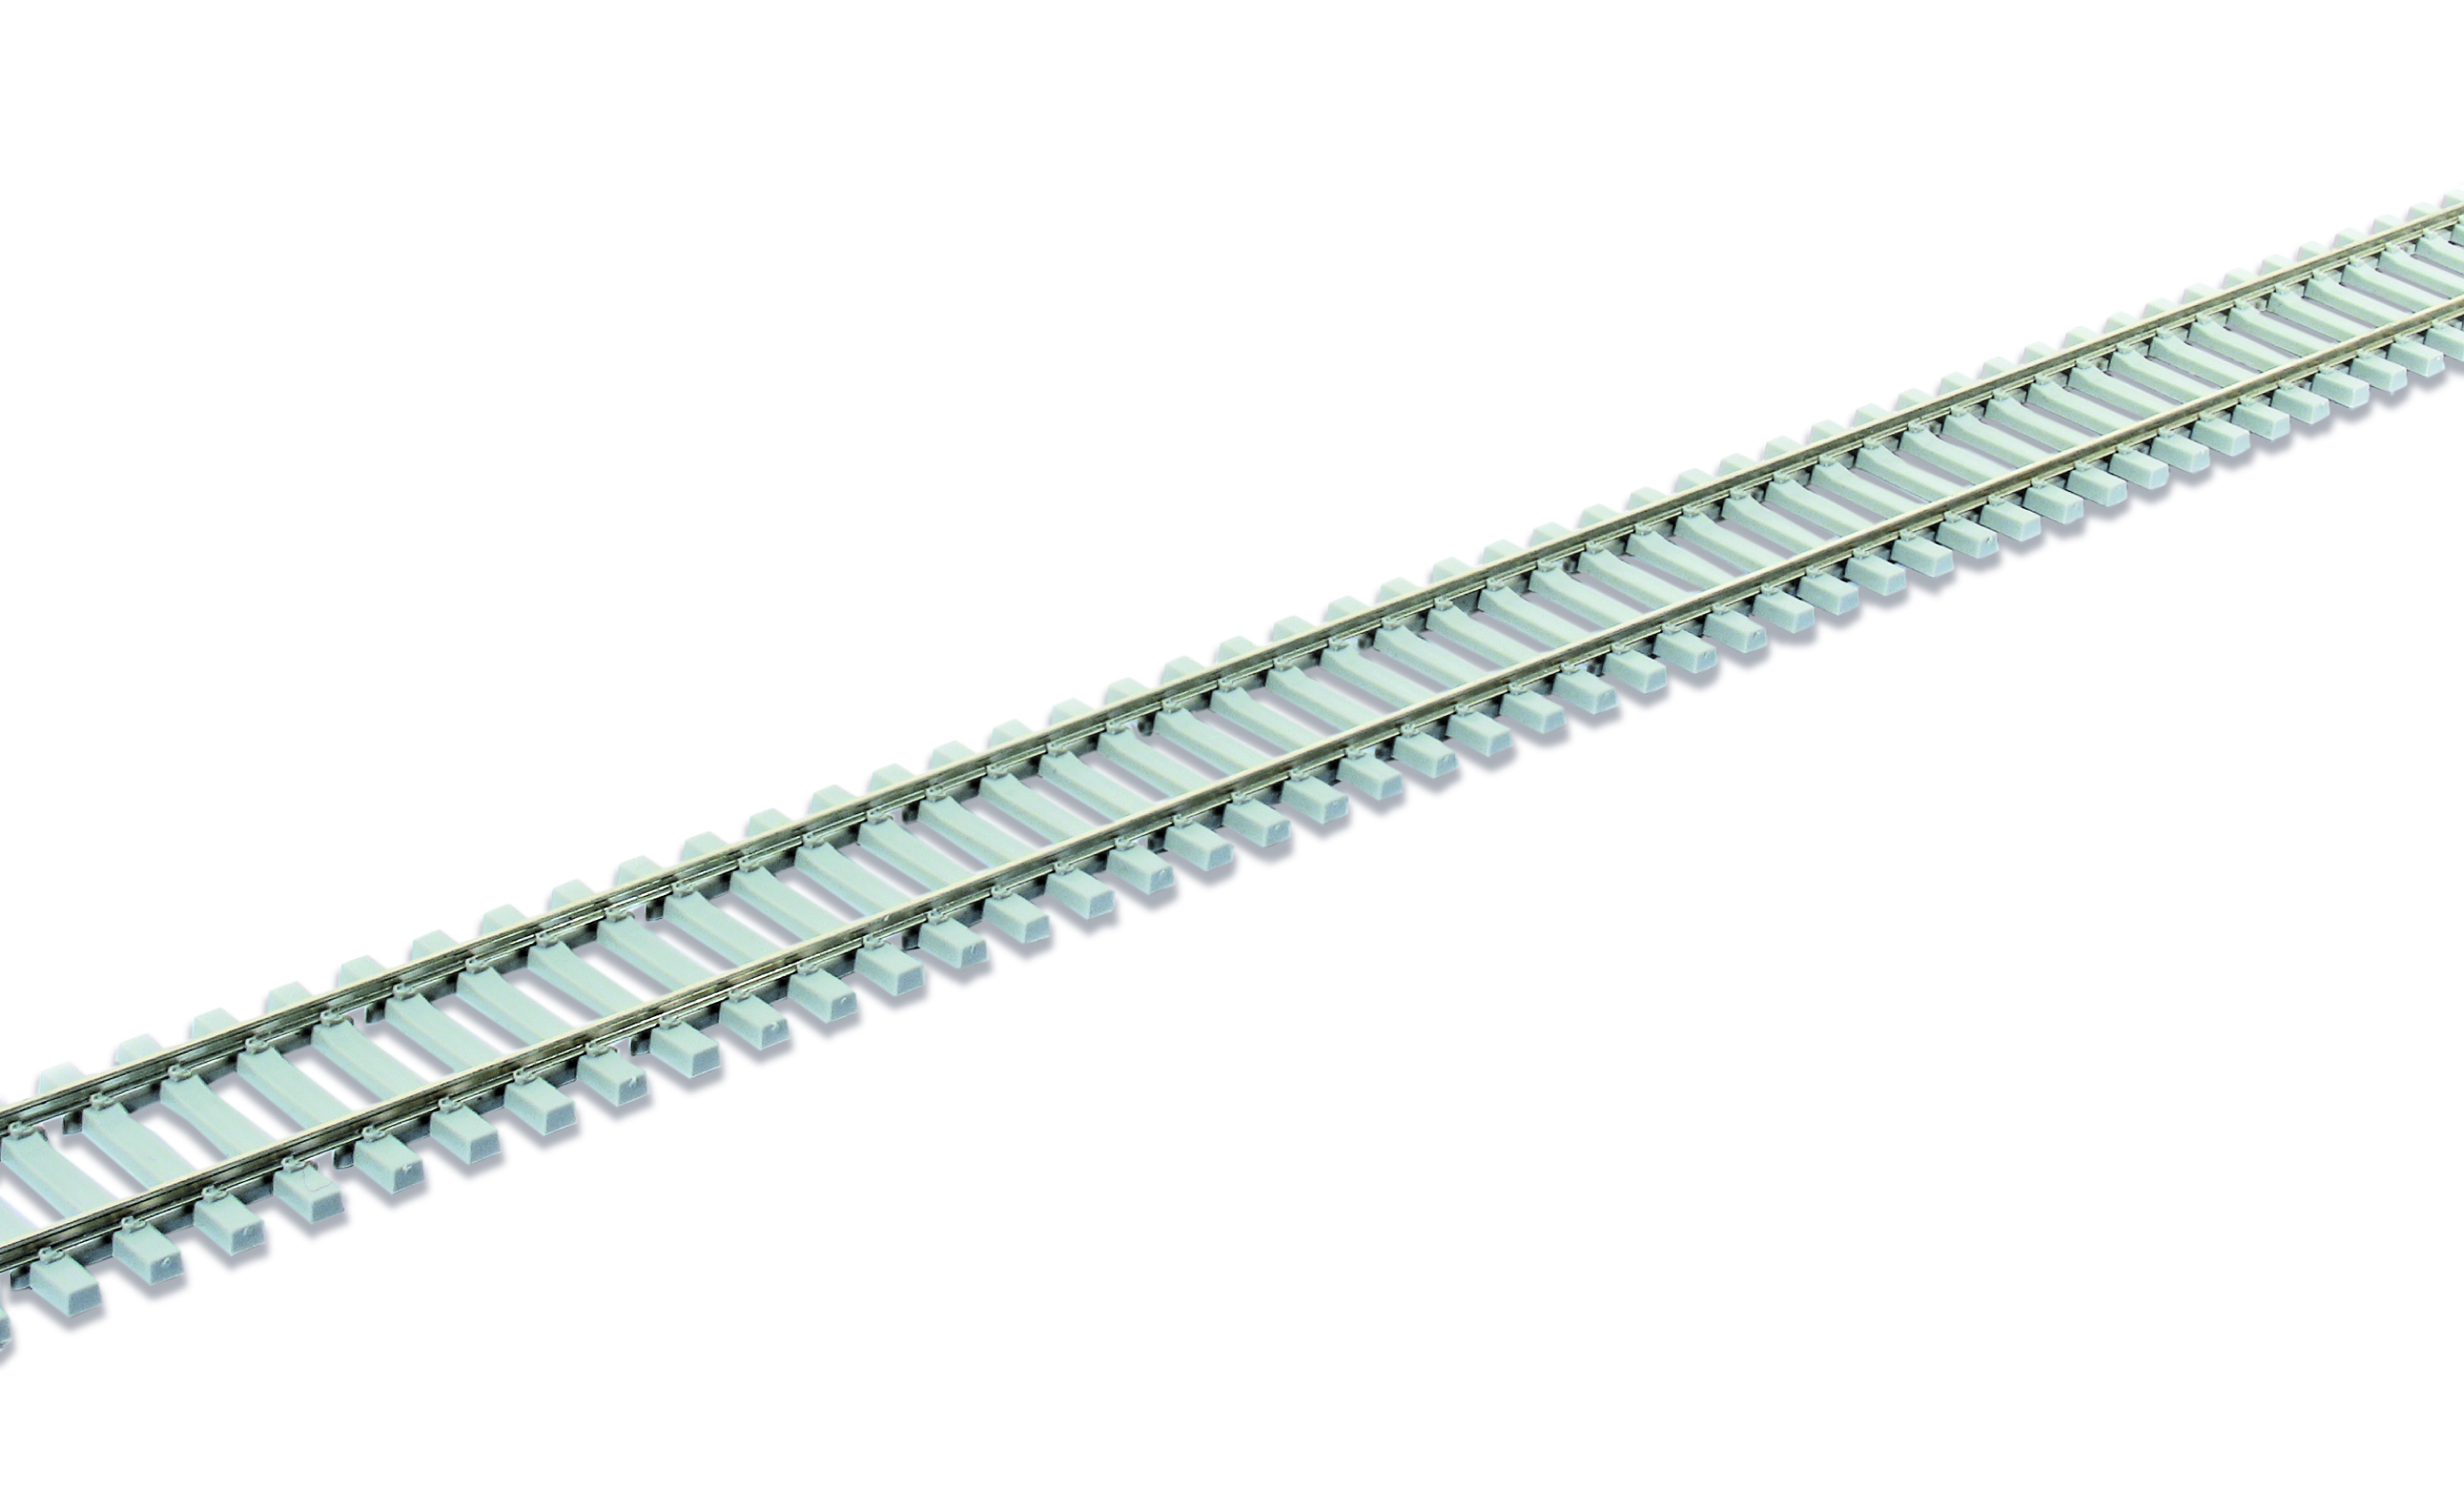 Peco SL-102Fb Concrete sleeper type Code 75, nickel silver rail - 914mm x 25